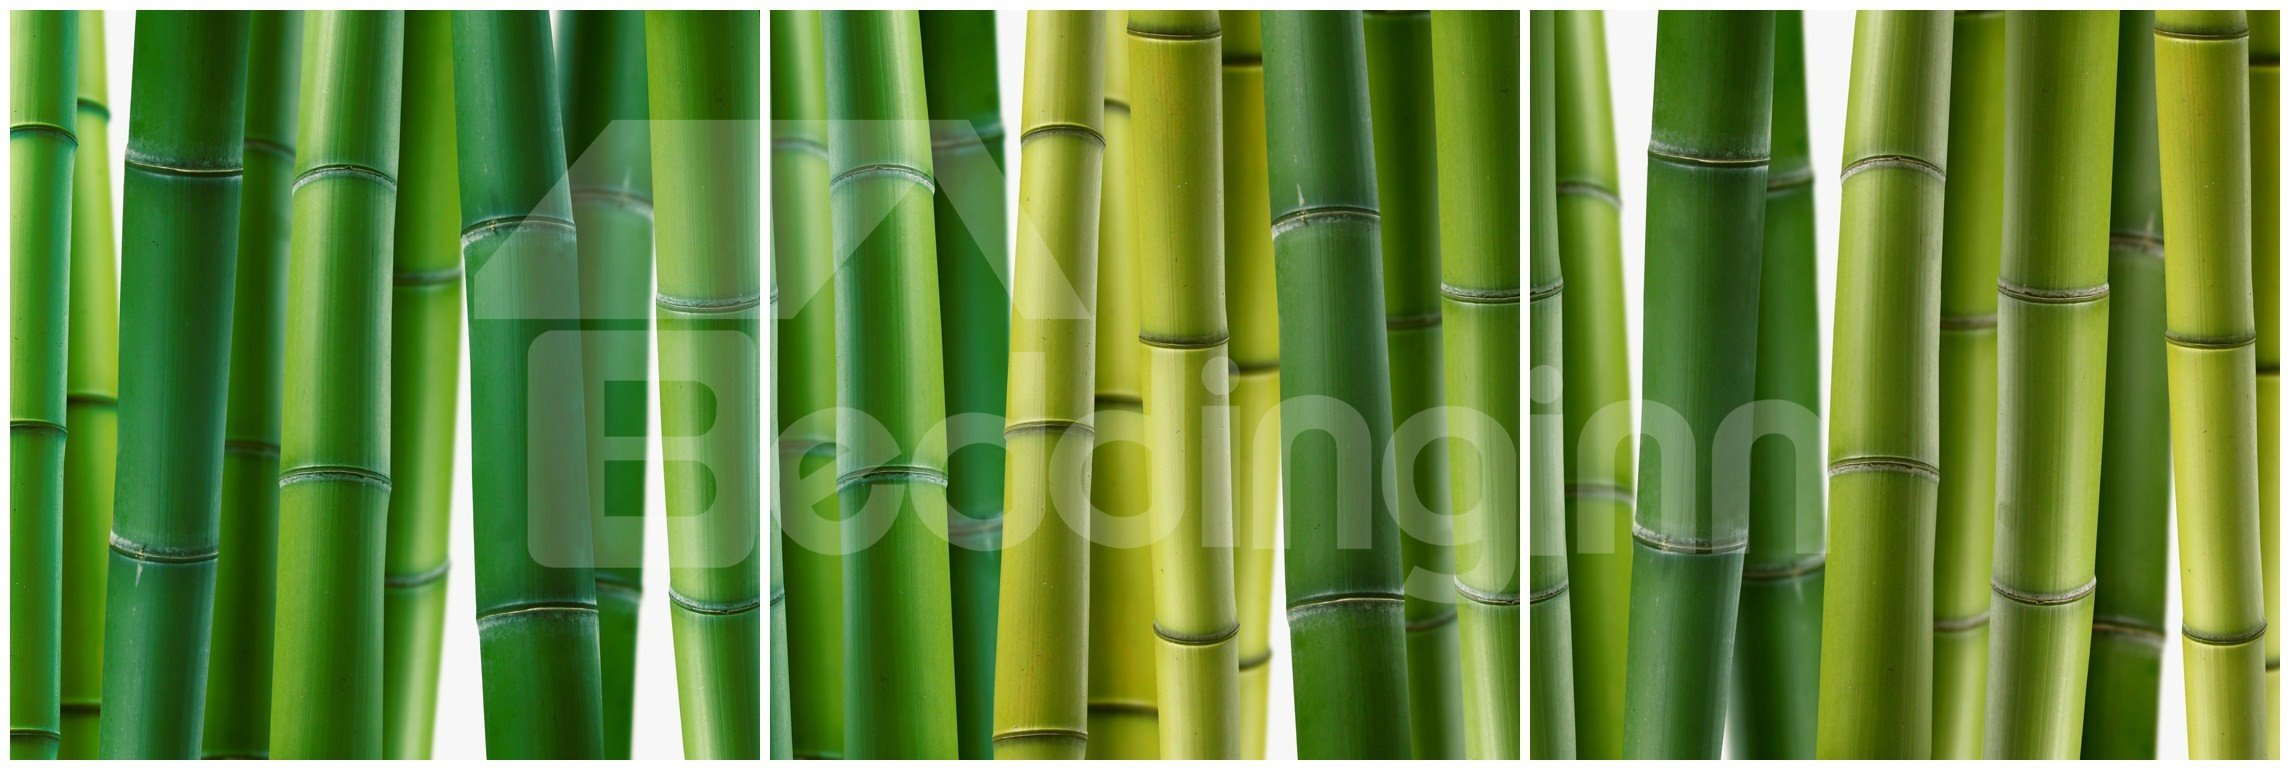 New Arrival Bamboo Grove Canvas Wall Prints